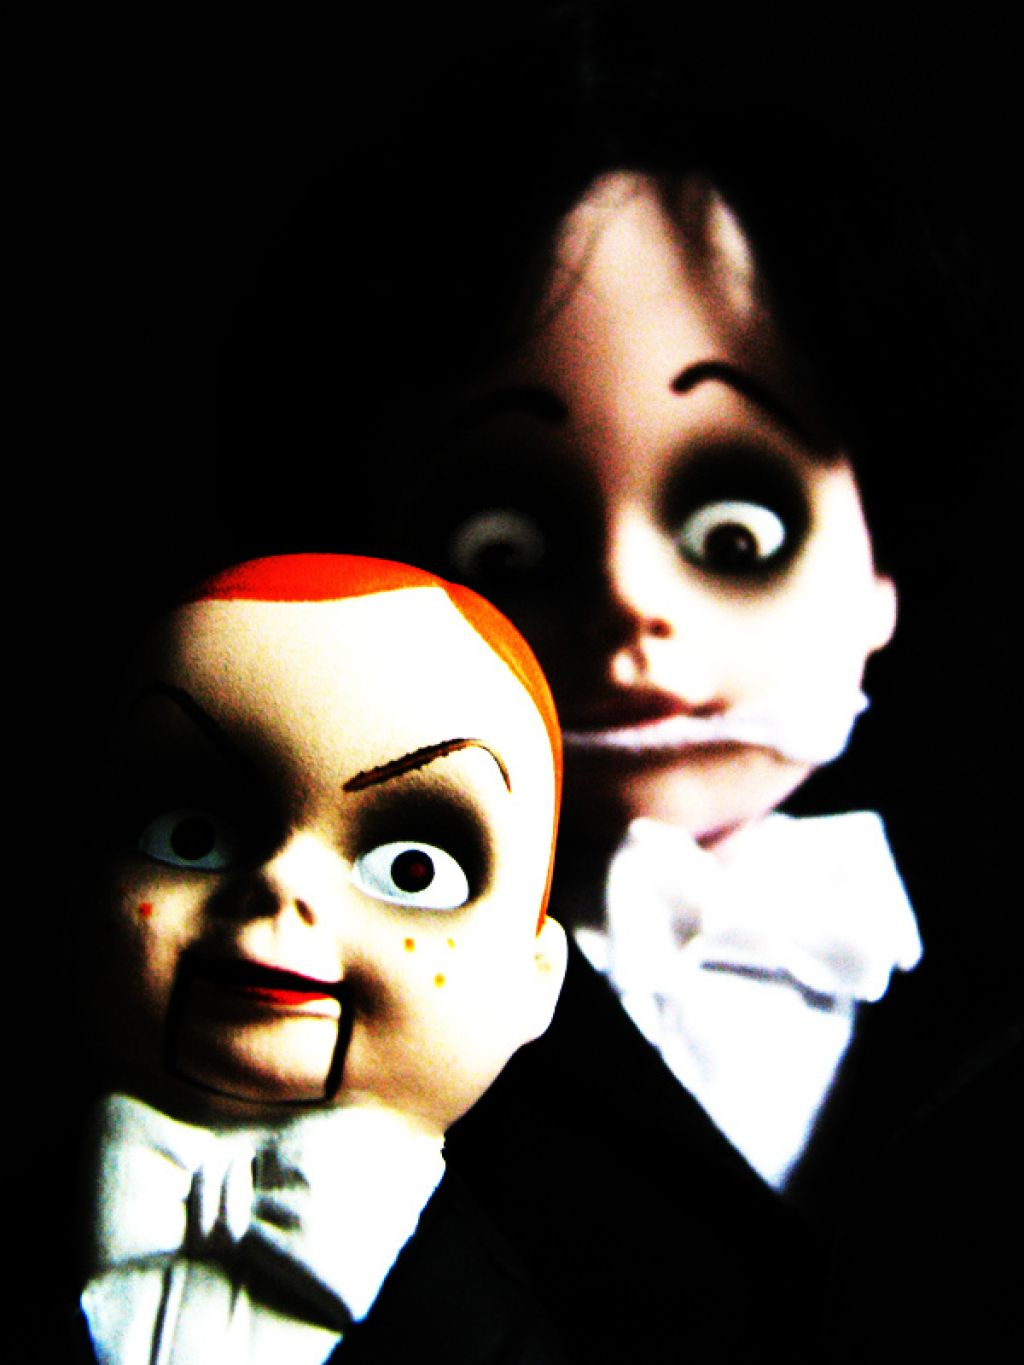 living dead doll14 Morbid Living Dead Dolls